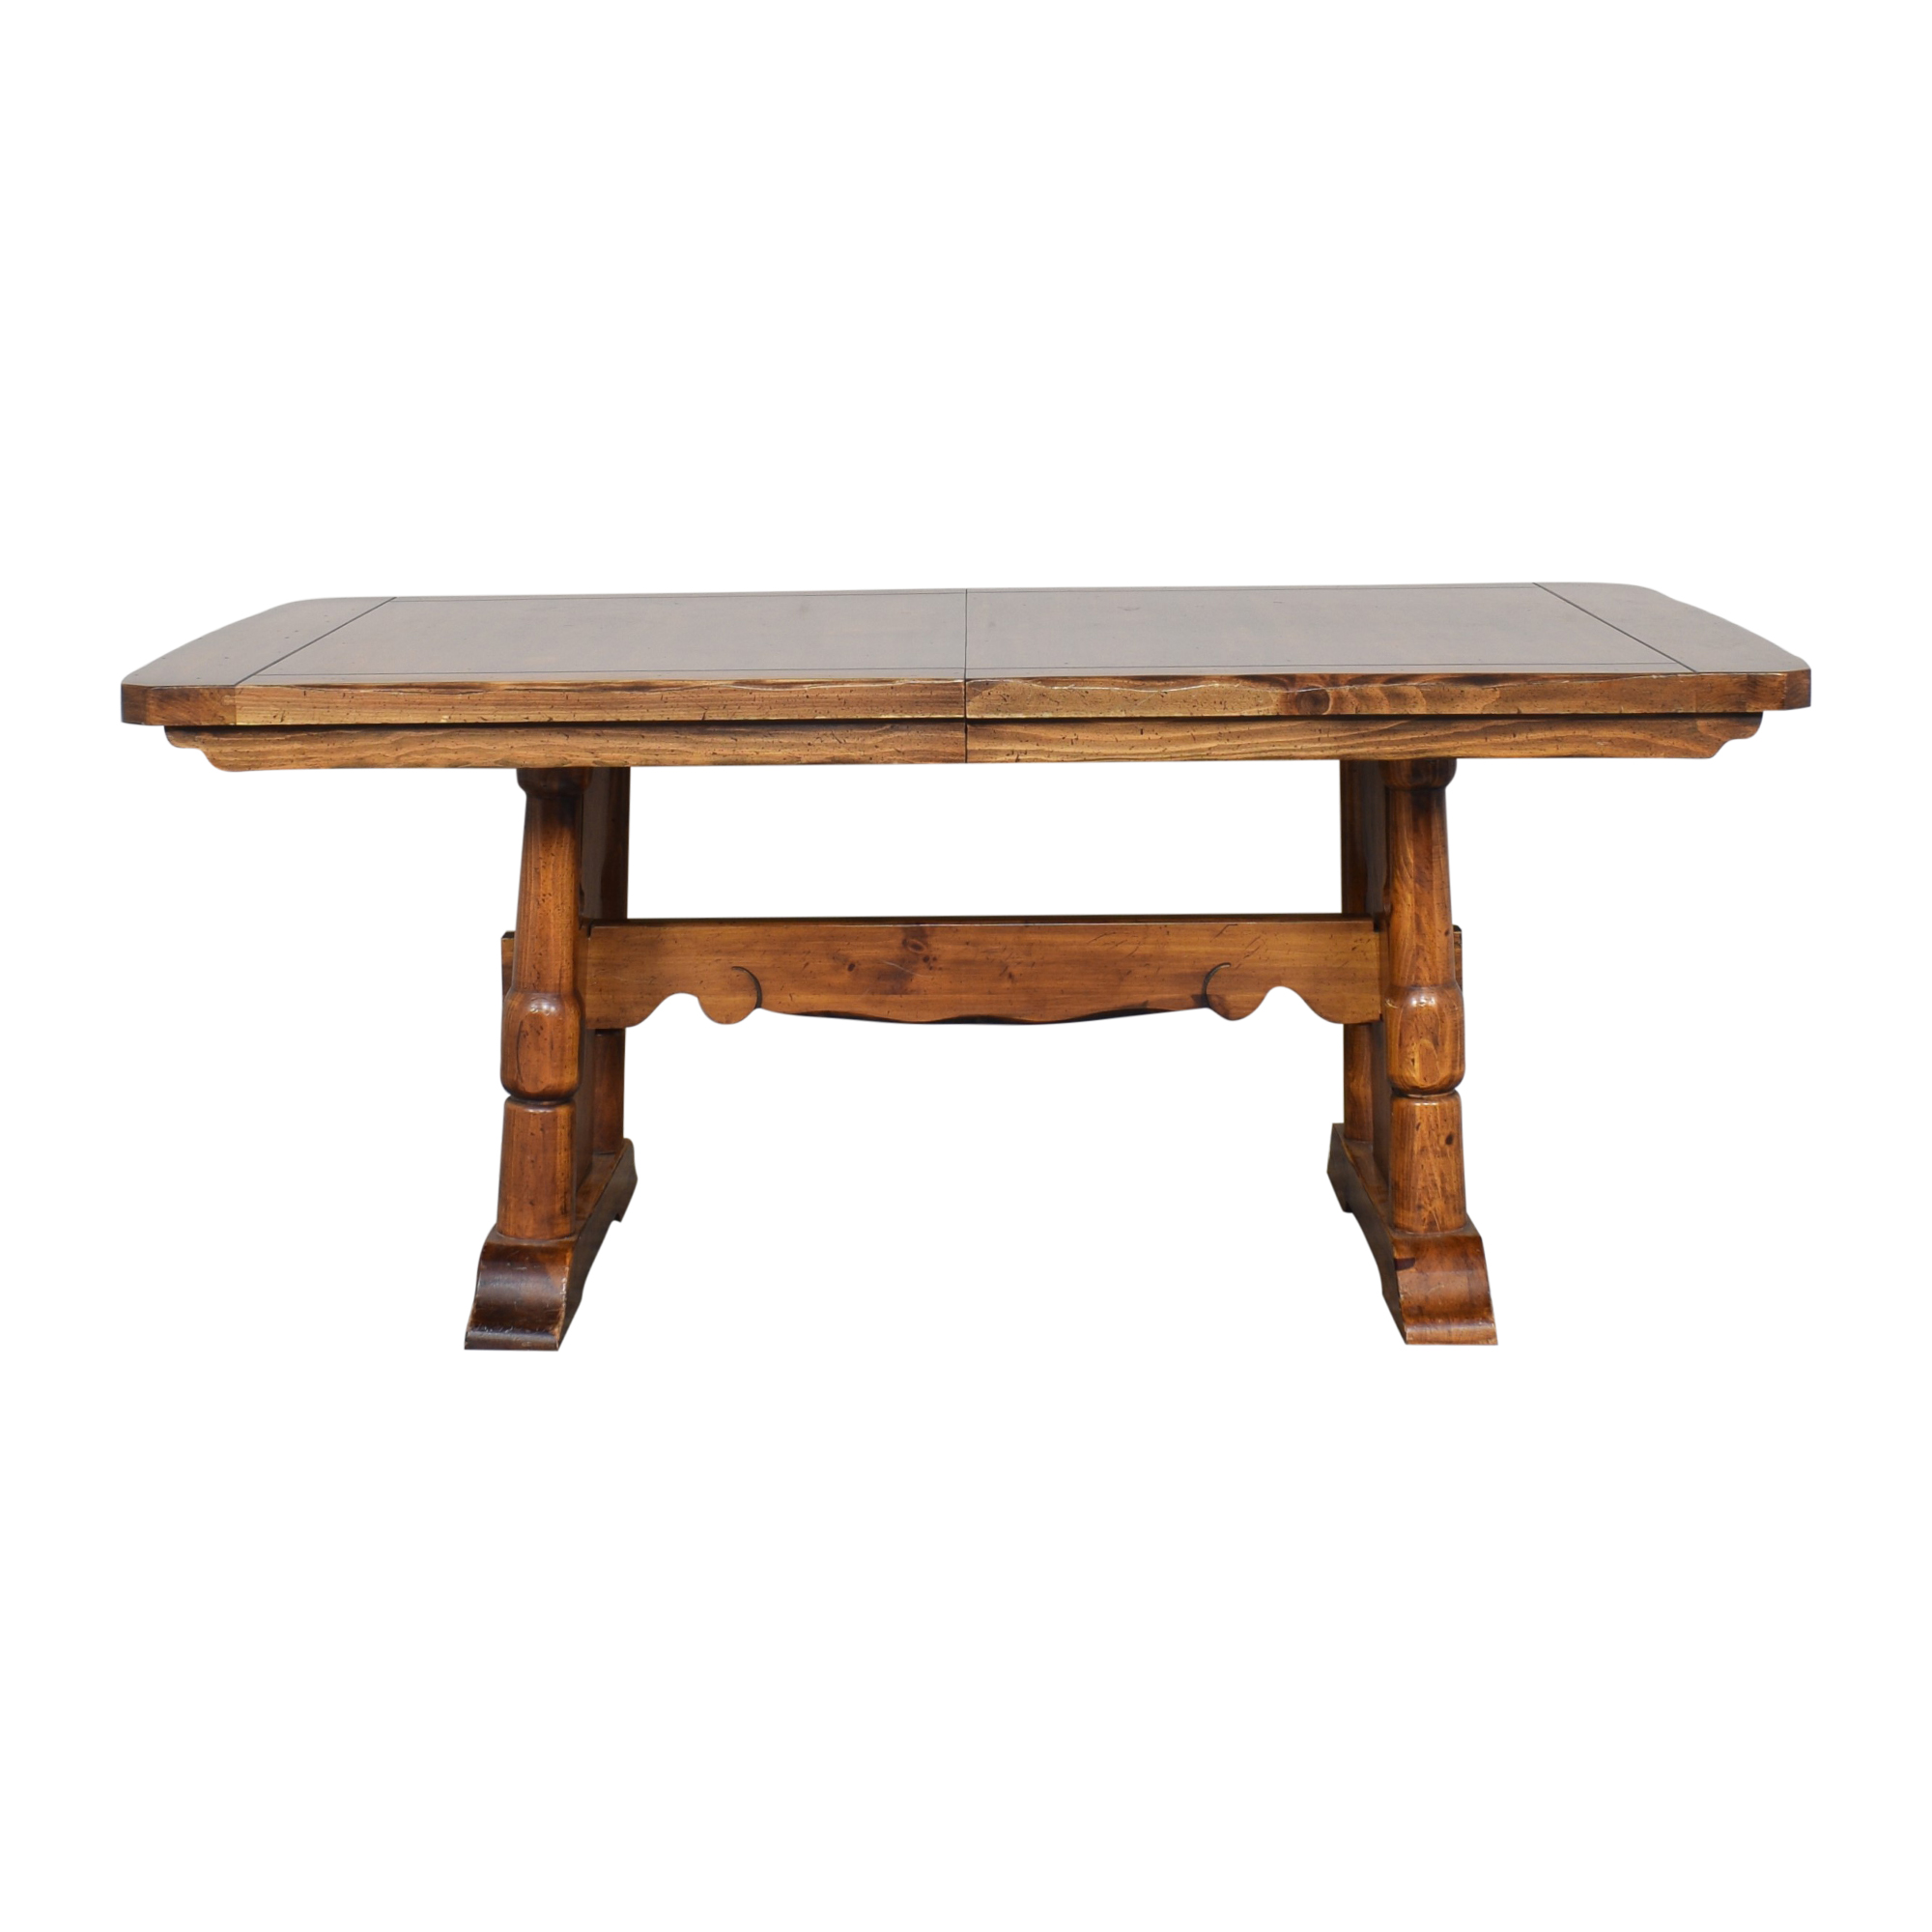 Burlington House Furniture Burlington House Furniture Extendable Dining Table Dinner Tables